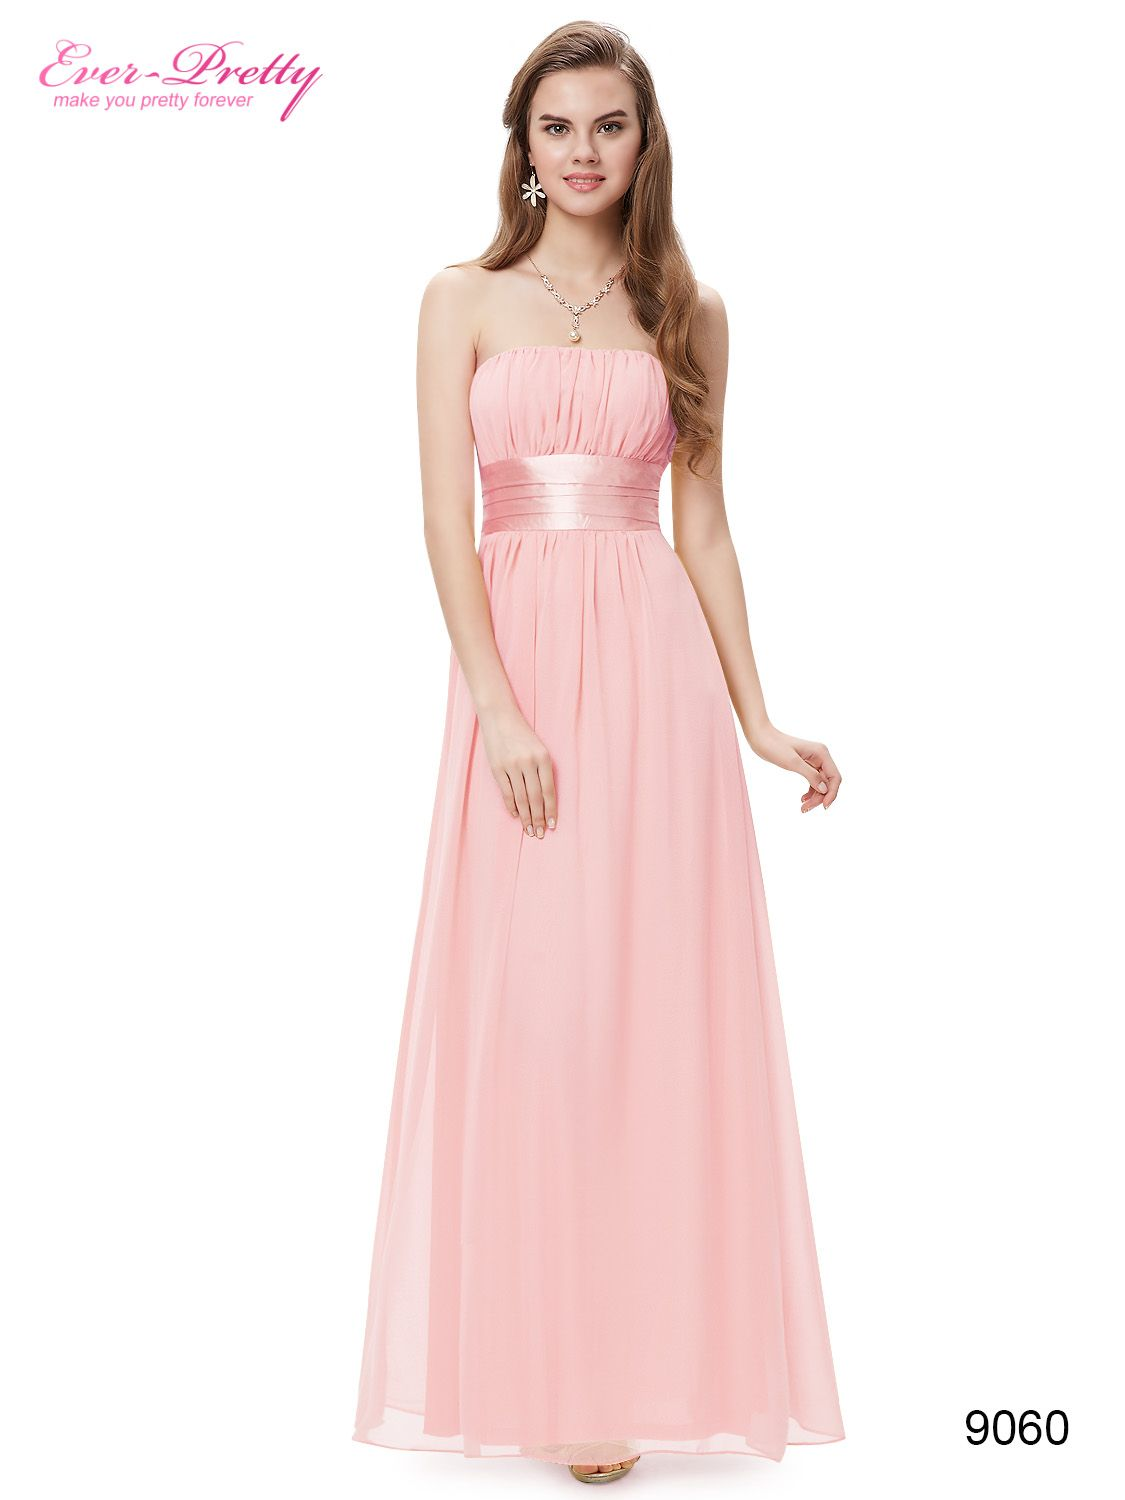 Sexy Pink Long Evening Party Bridesmaid Dress - Ever-Pretty US ...